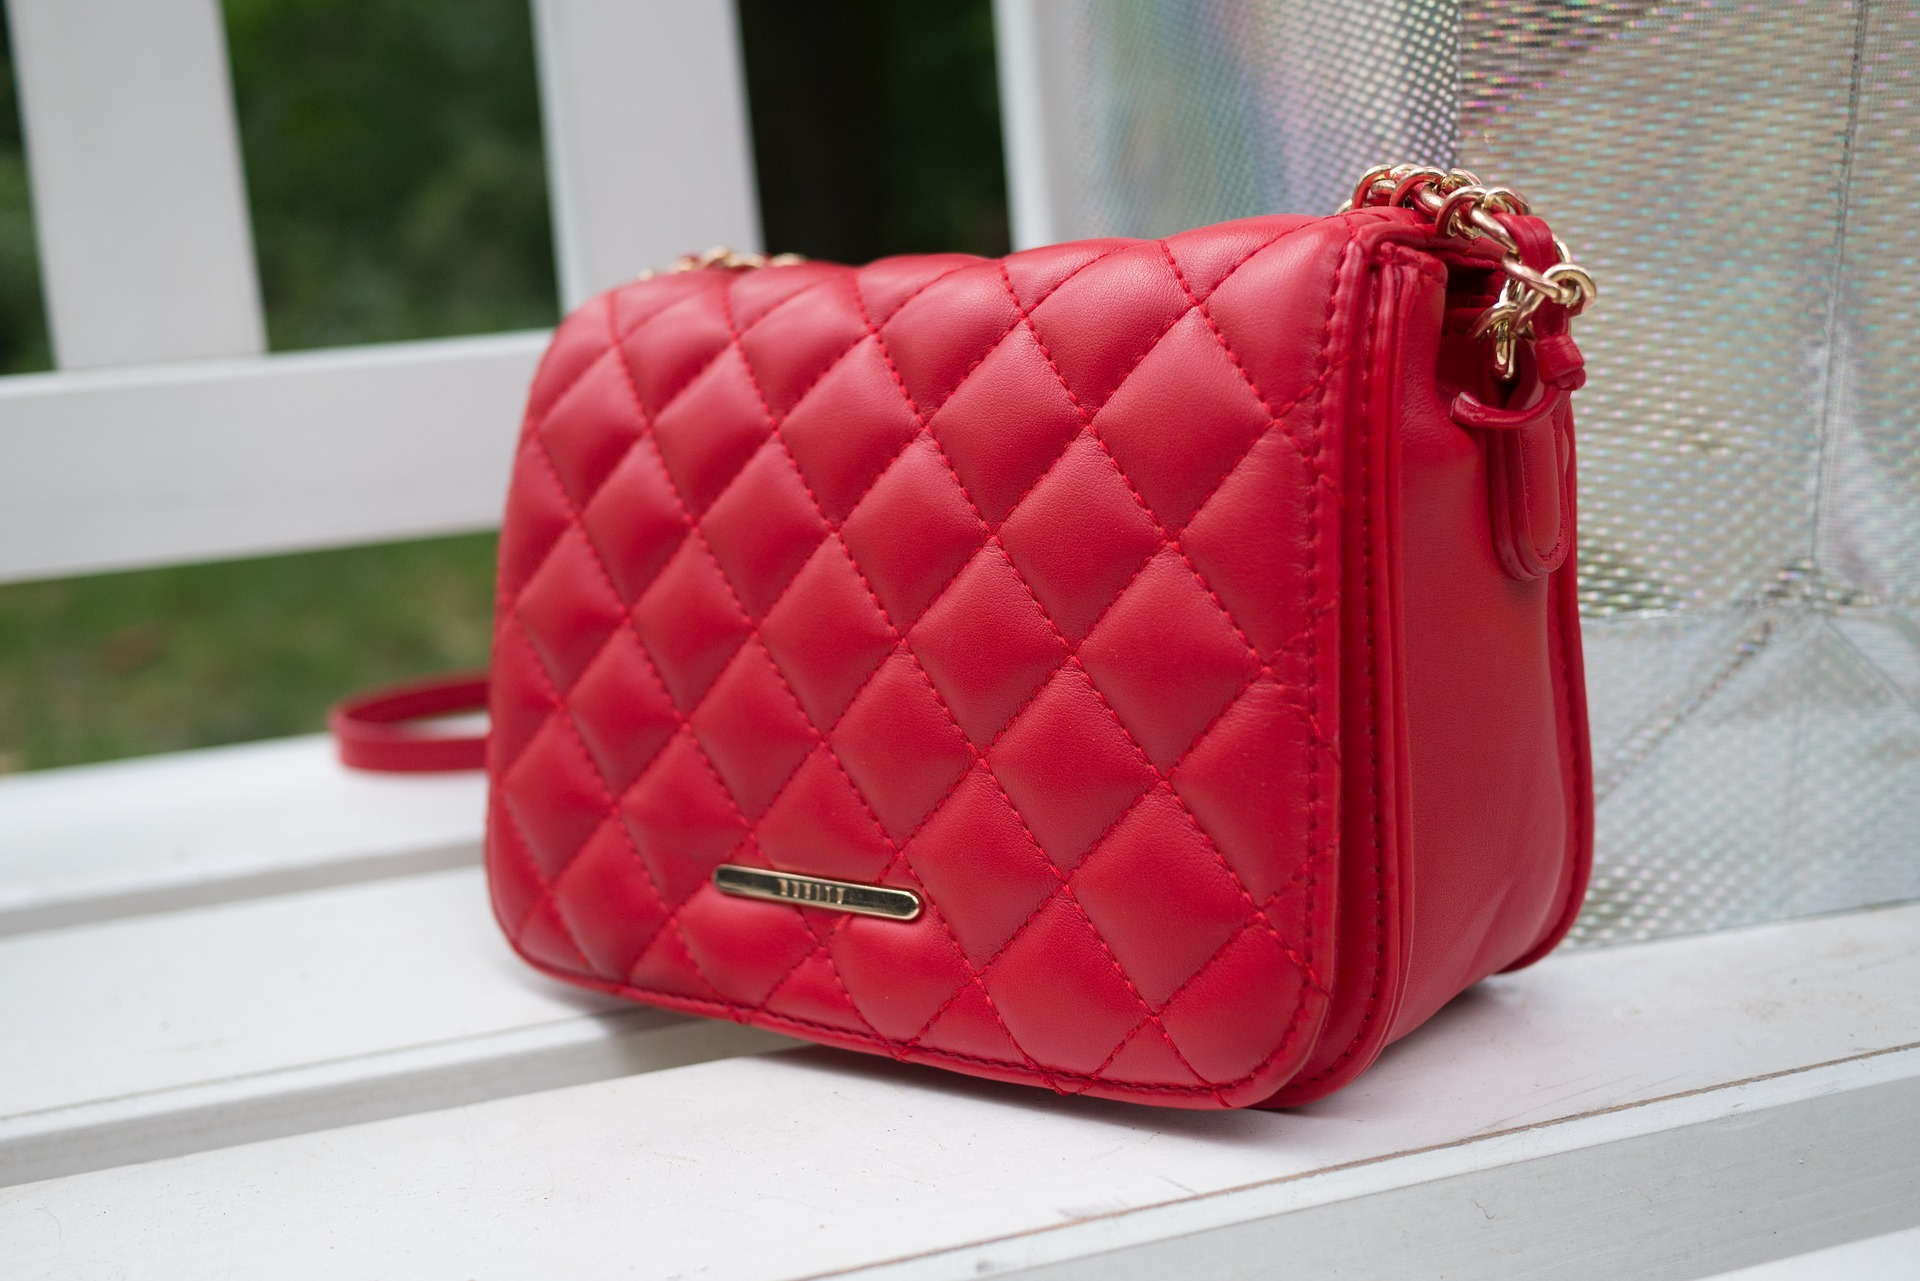 buy the best handbags online